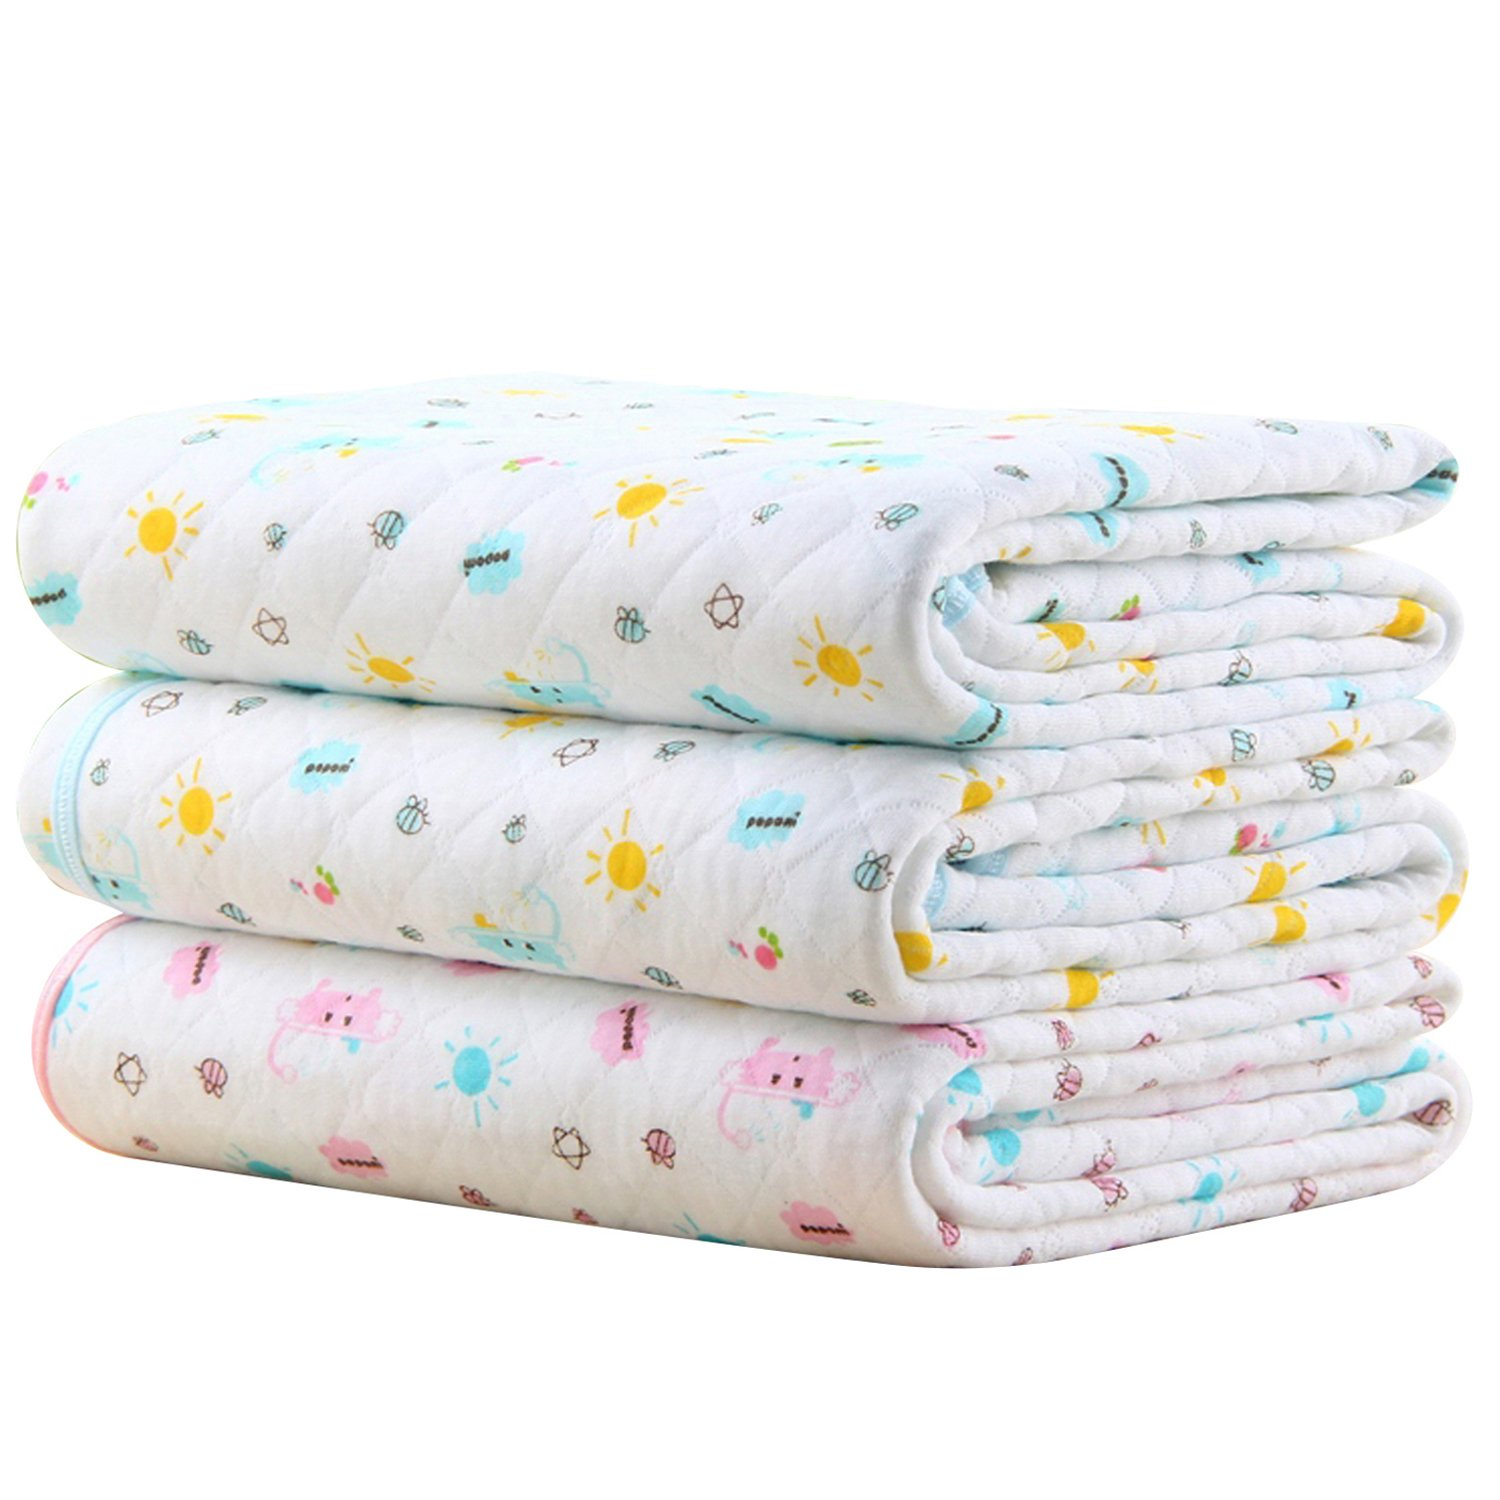 Changing Table Pads Amp Covers Online Shopping For